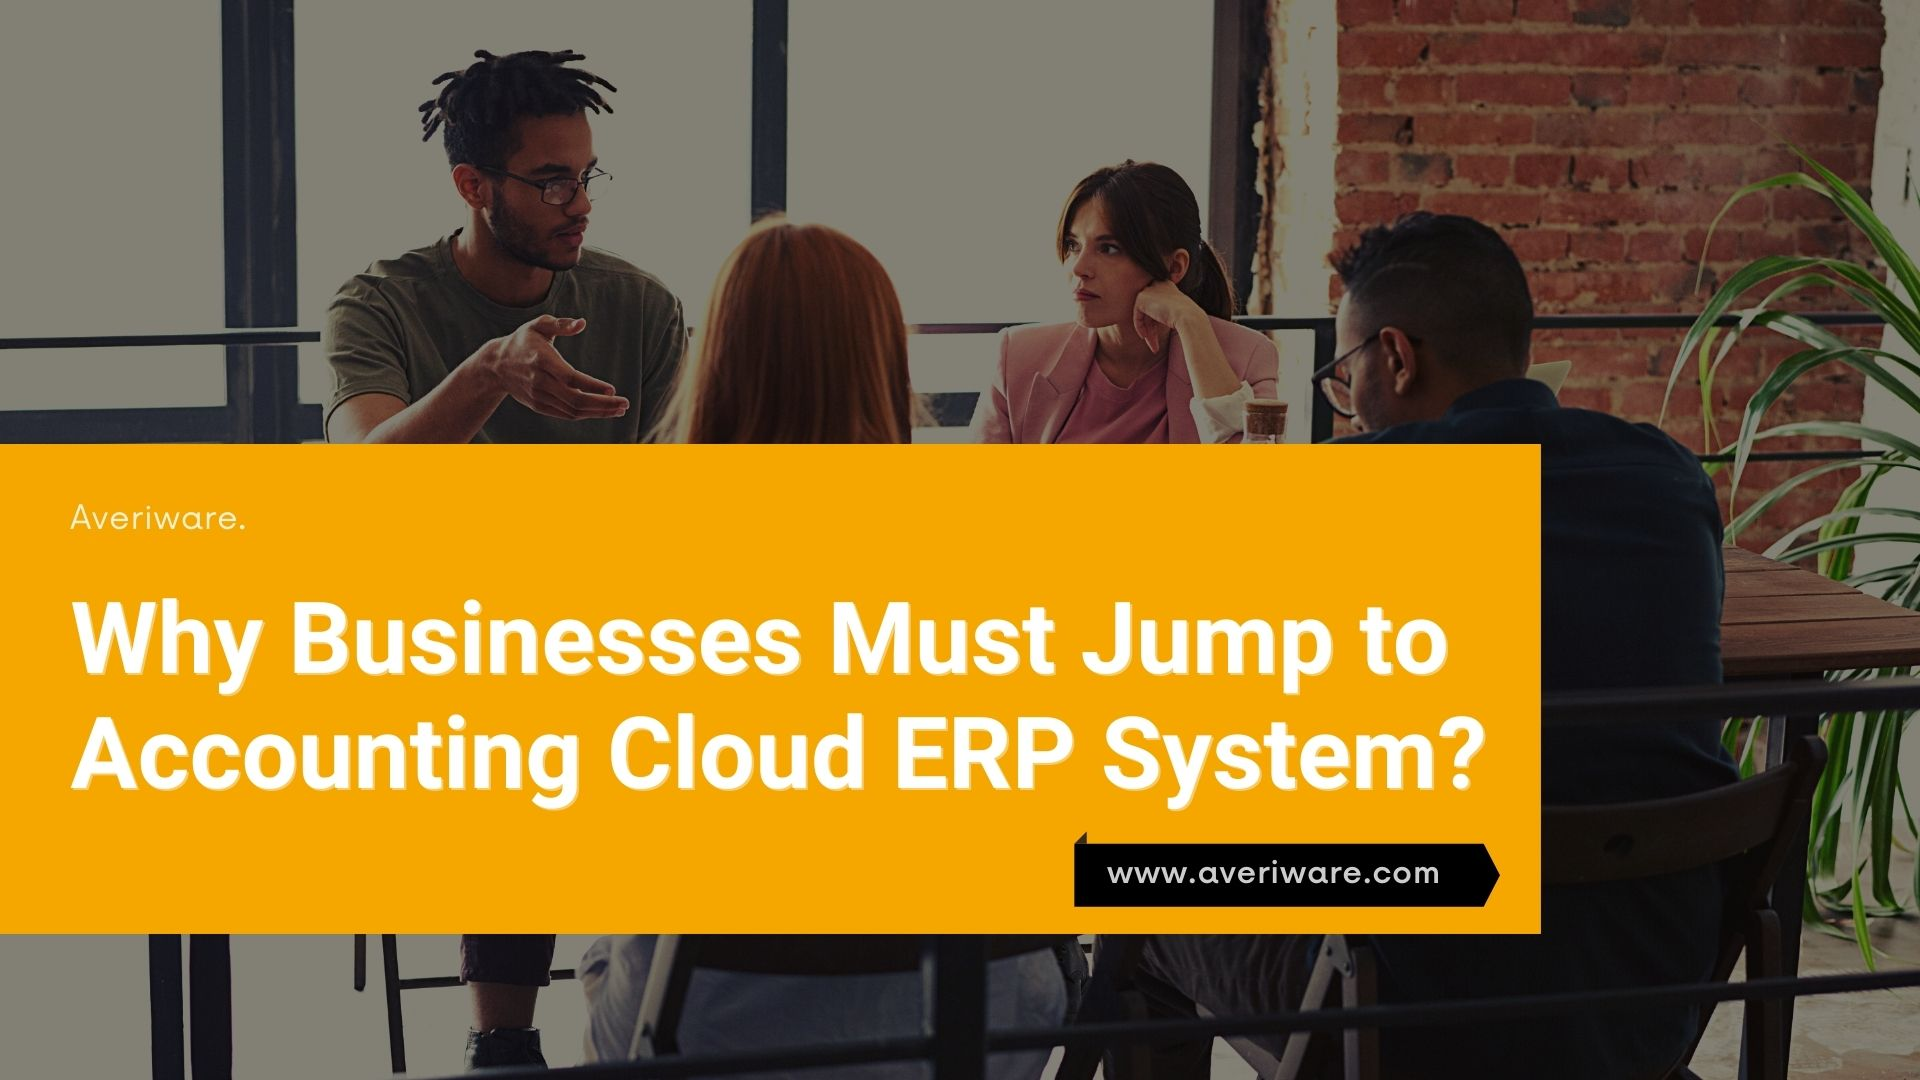 Why-Businesses-Must-Jump-to-Accounting-Cloud-ERP-Software